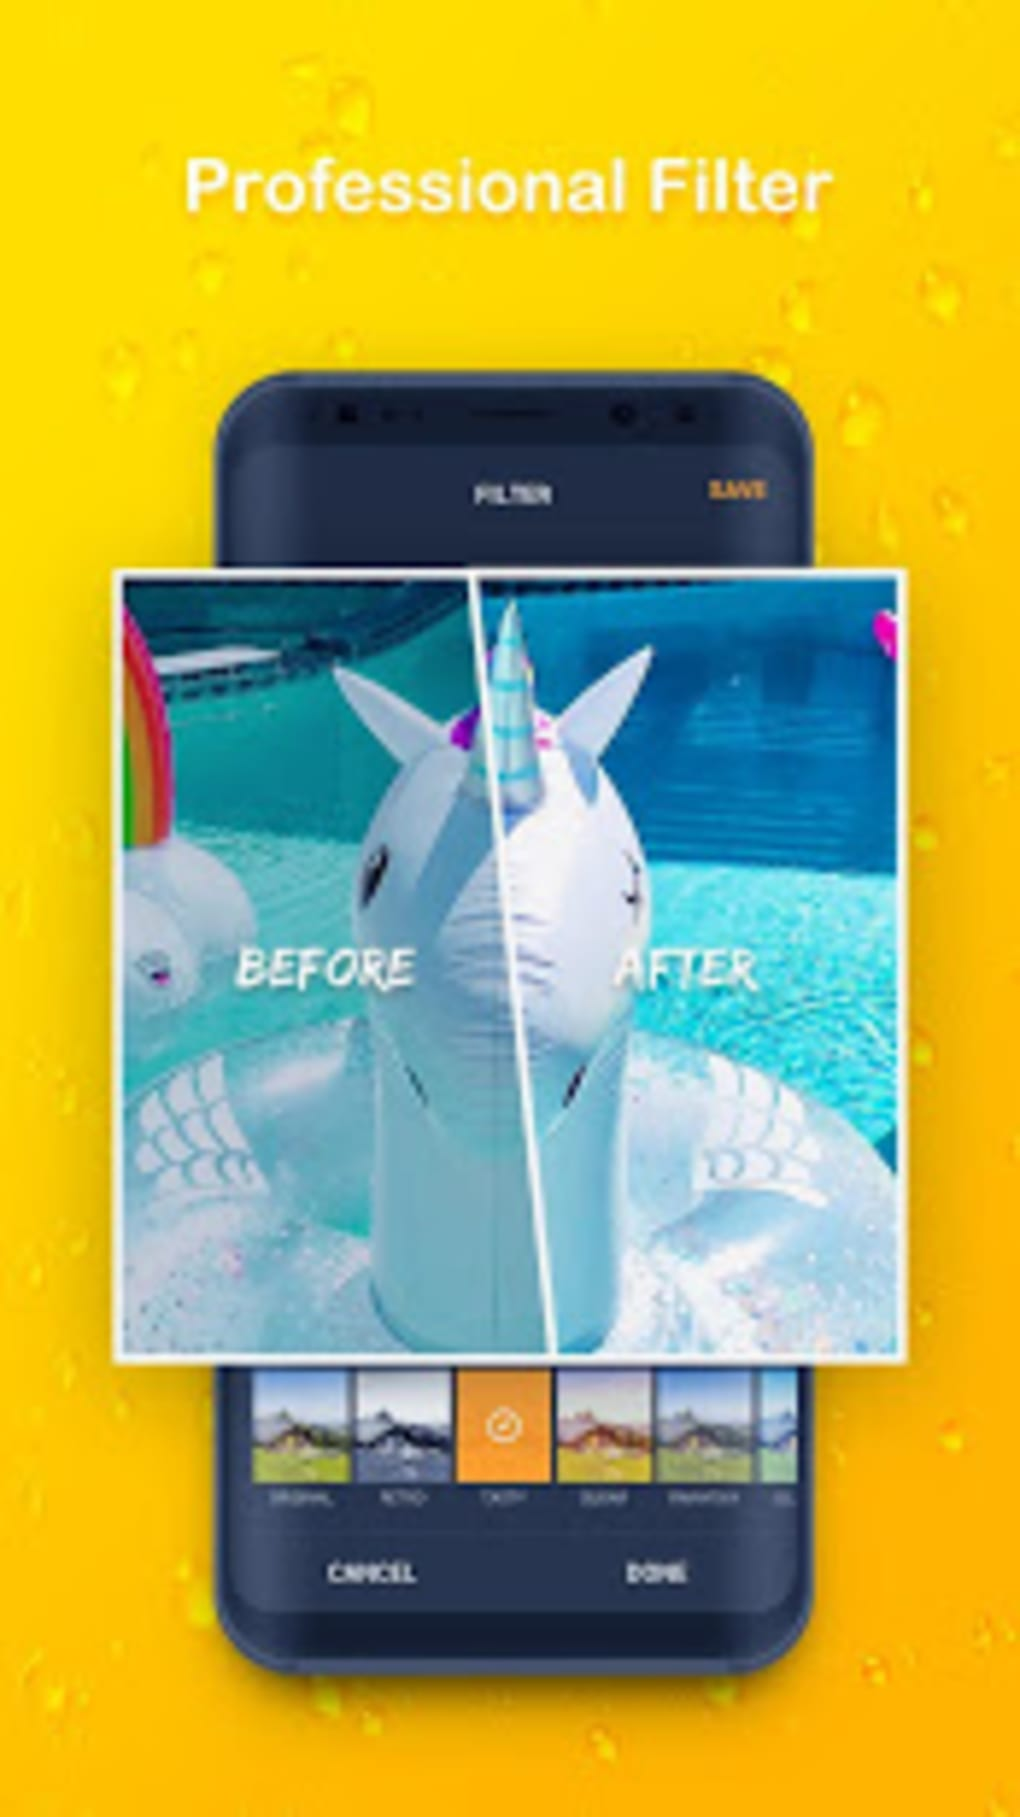 Photo editor pro for android | Photo Editor Pro APK free download